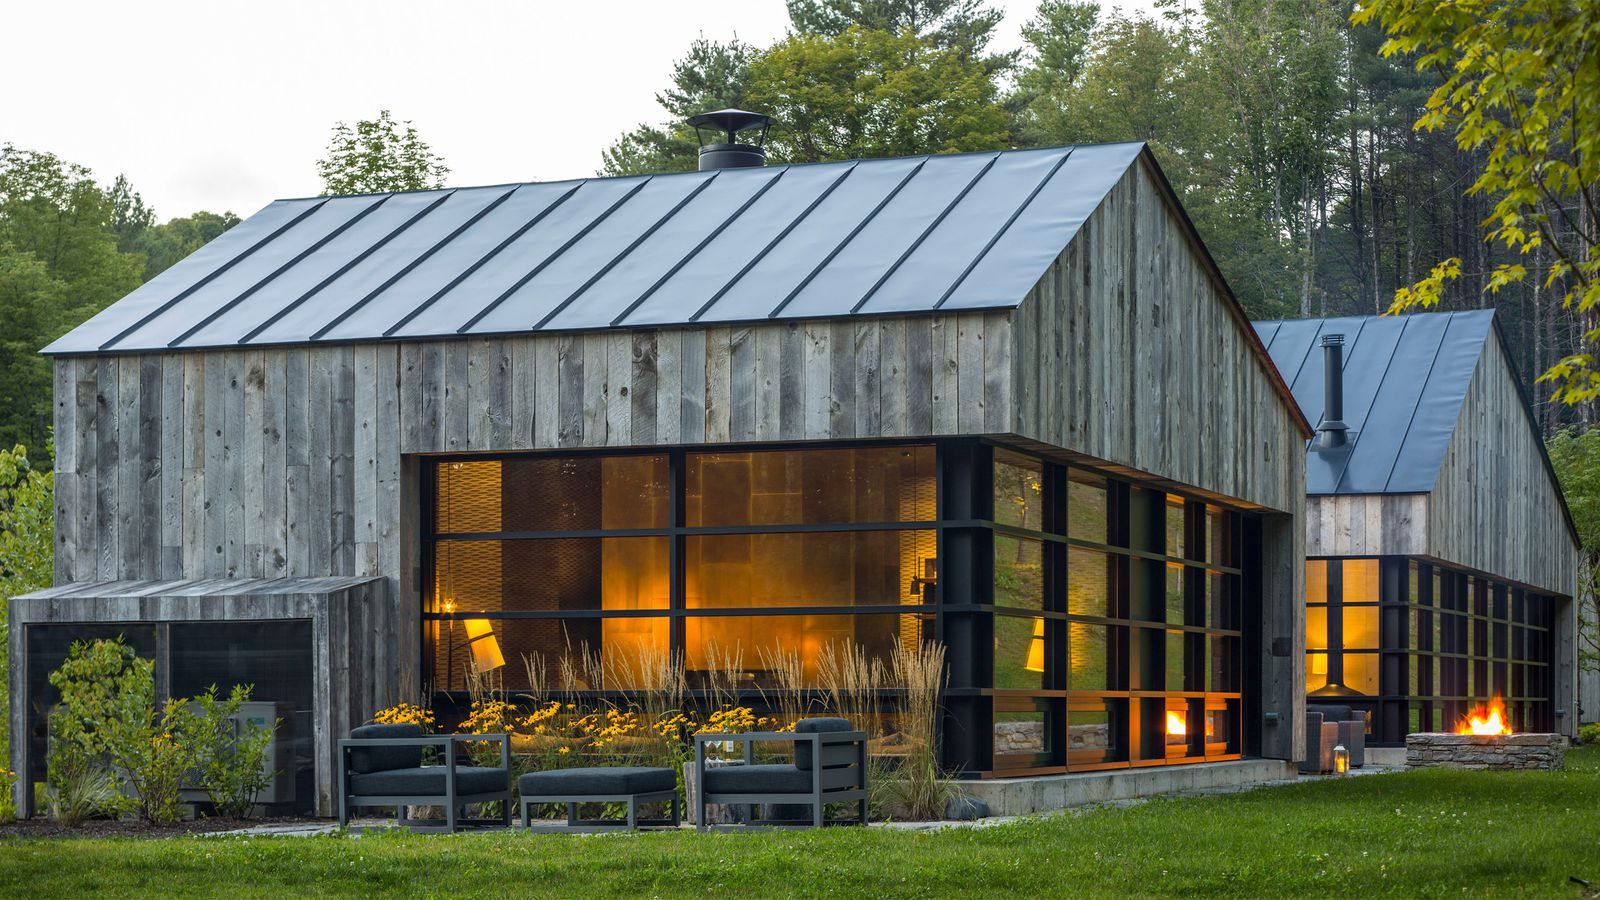 Sleek Guesthouse Clad In Repurposed Wood Rises In Vermont